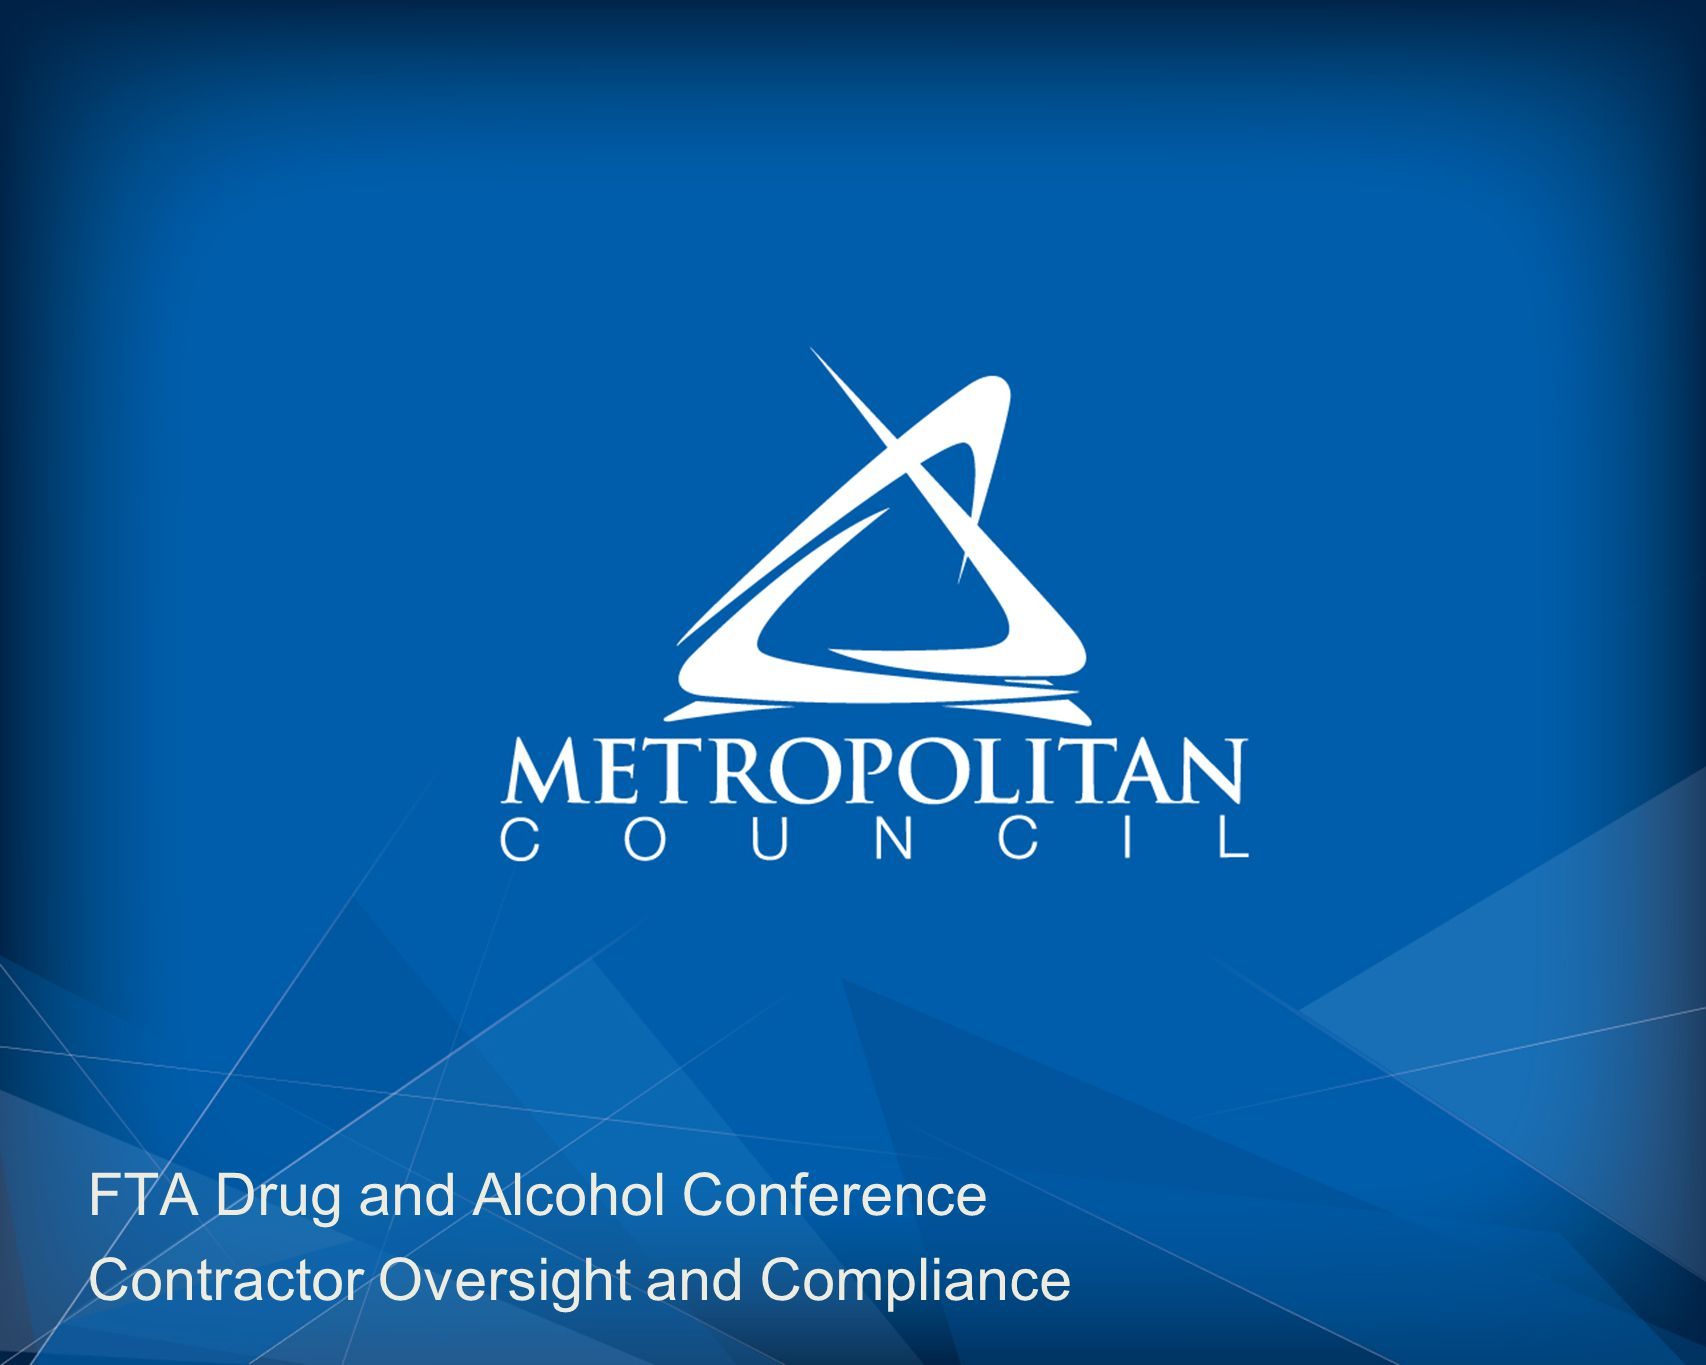 FTA Drug and Alcohol Conference Contractor Oversight and Compliance